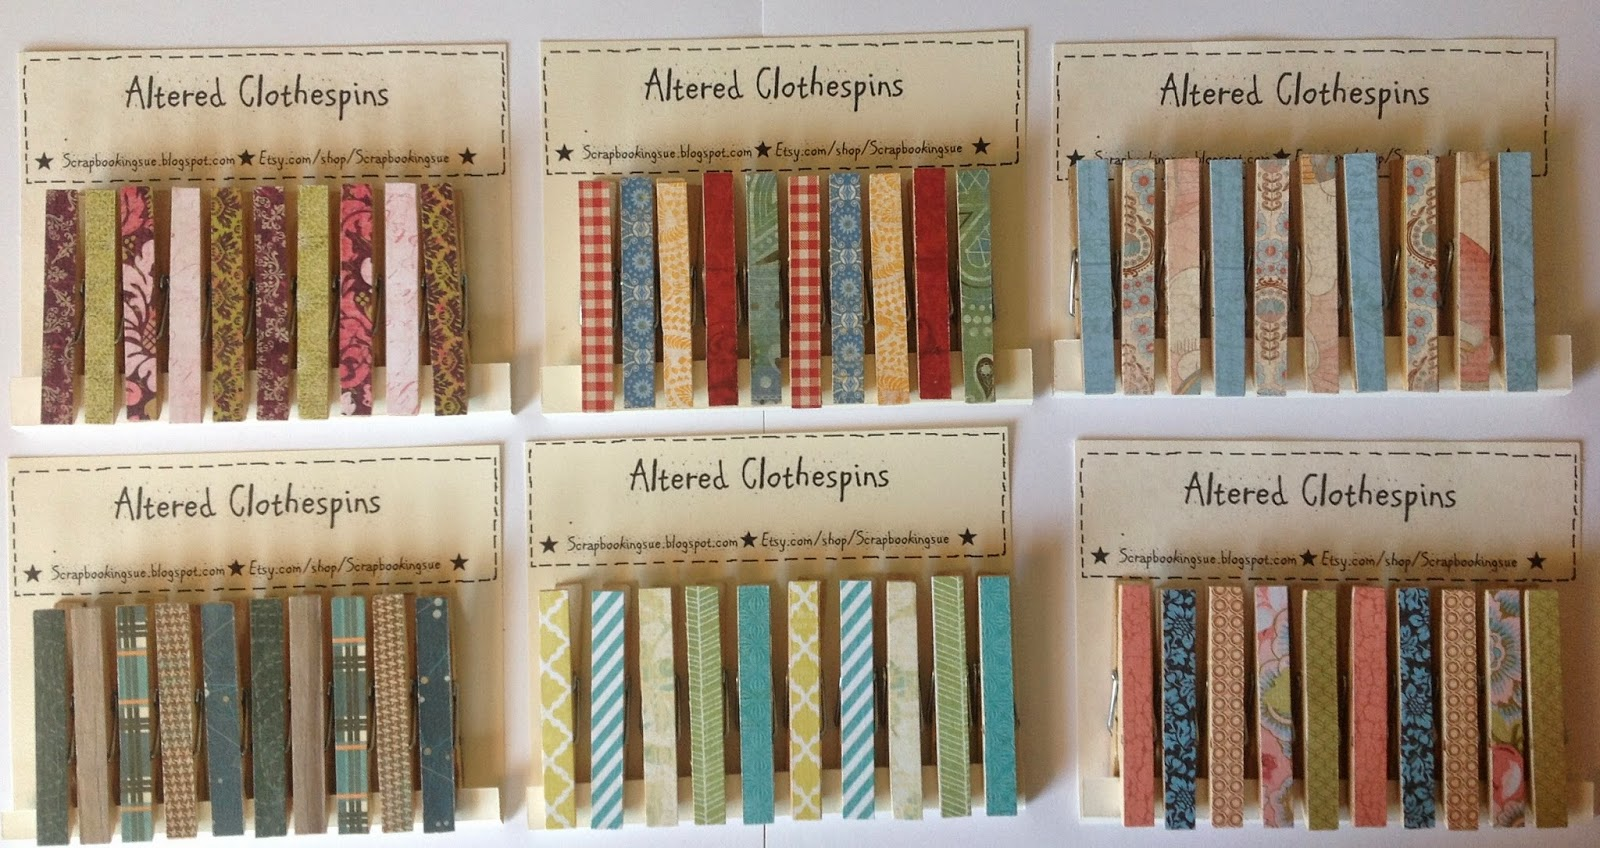 I have been on a clothespin kick lately. Not for laundry, but for crafty,  decorating ideas. Pretty little clothespins are great for clipping up  pictures to ...